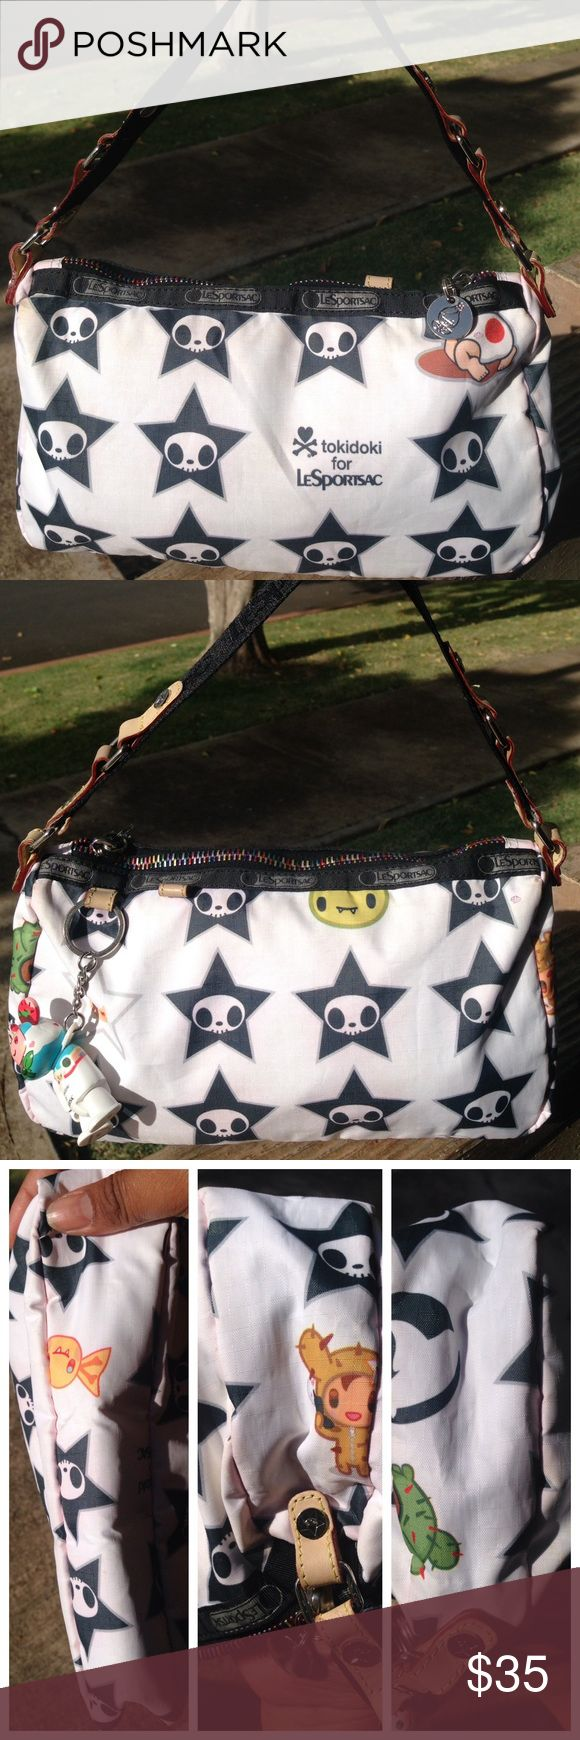 Tokidoki Adios Star Skull Gioco Handbag Bag Qee Tokidoki Lesportsac Black White Adios Star Skull Gioco Handbag Purse Bag Qee    PreLoved  Small handbag   Has Qee but missing an arm  RIRI zipper , runs smooth   Corners and stitching is tight  Liner is very clean tokidoki Bags Mini Bags